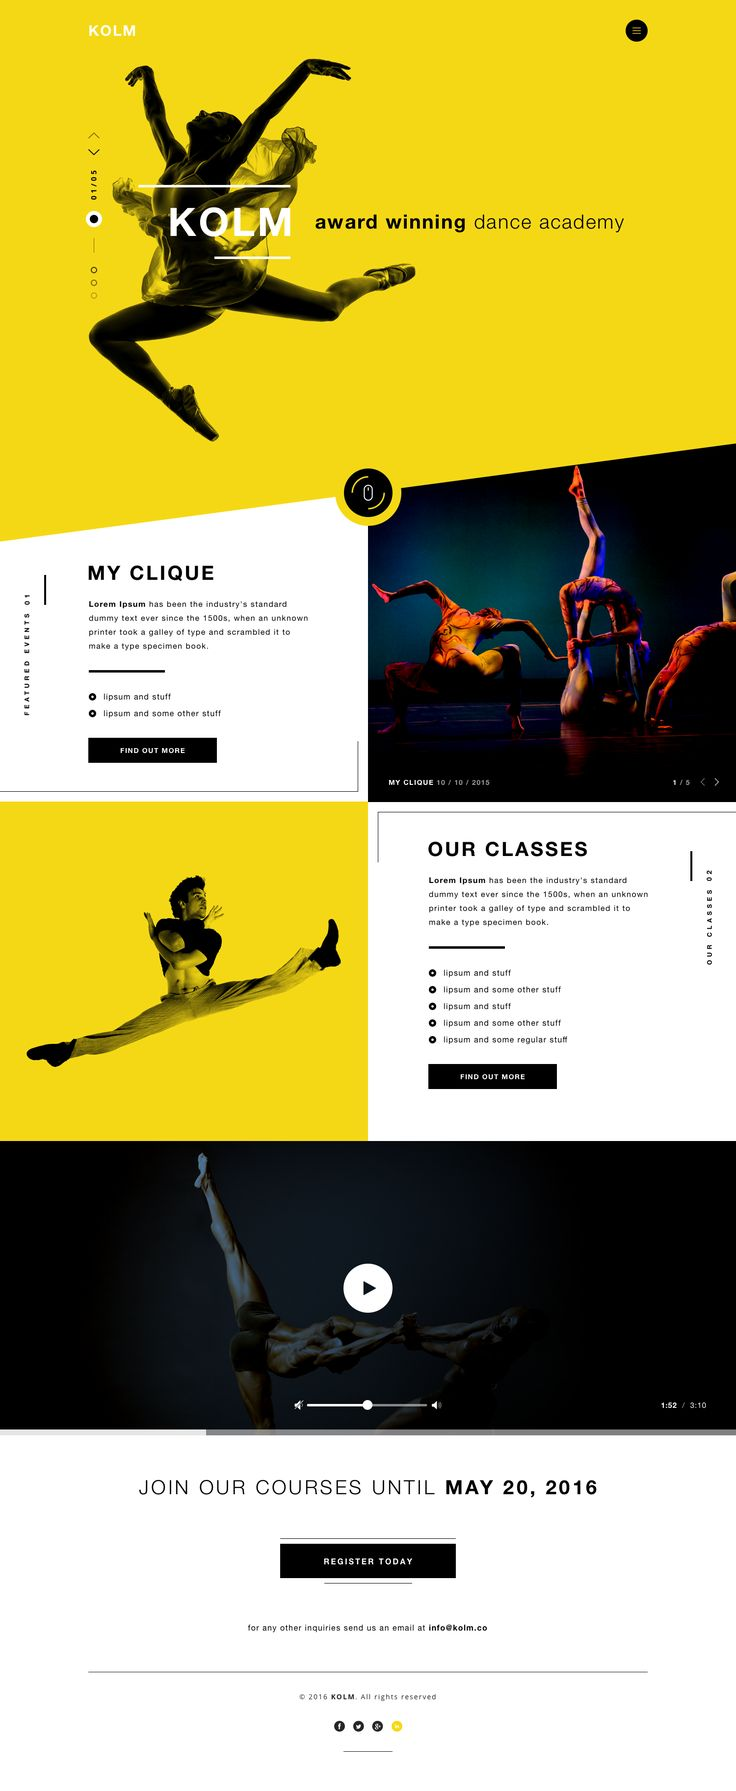 #webdesign #inspiration - Follow my webdesign board on Pinterest: http://lvn.io/cscwebdesign